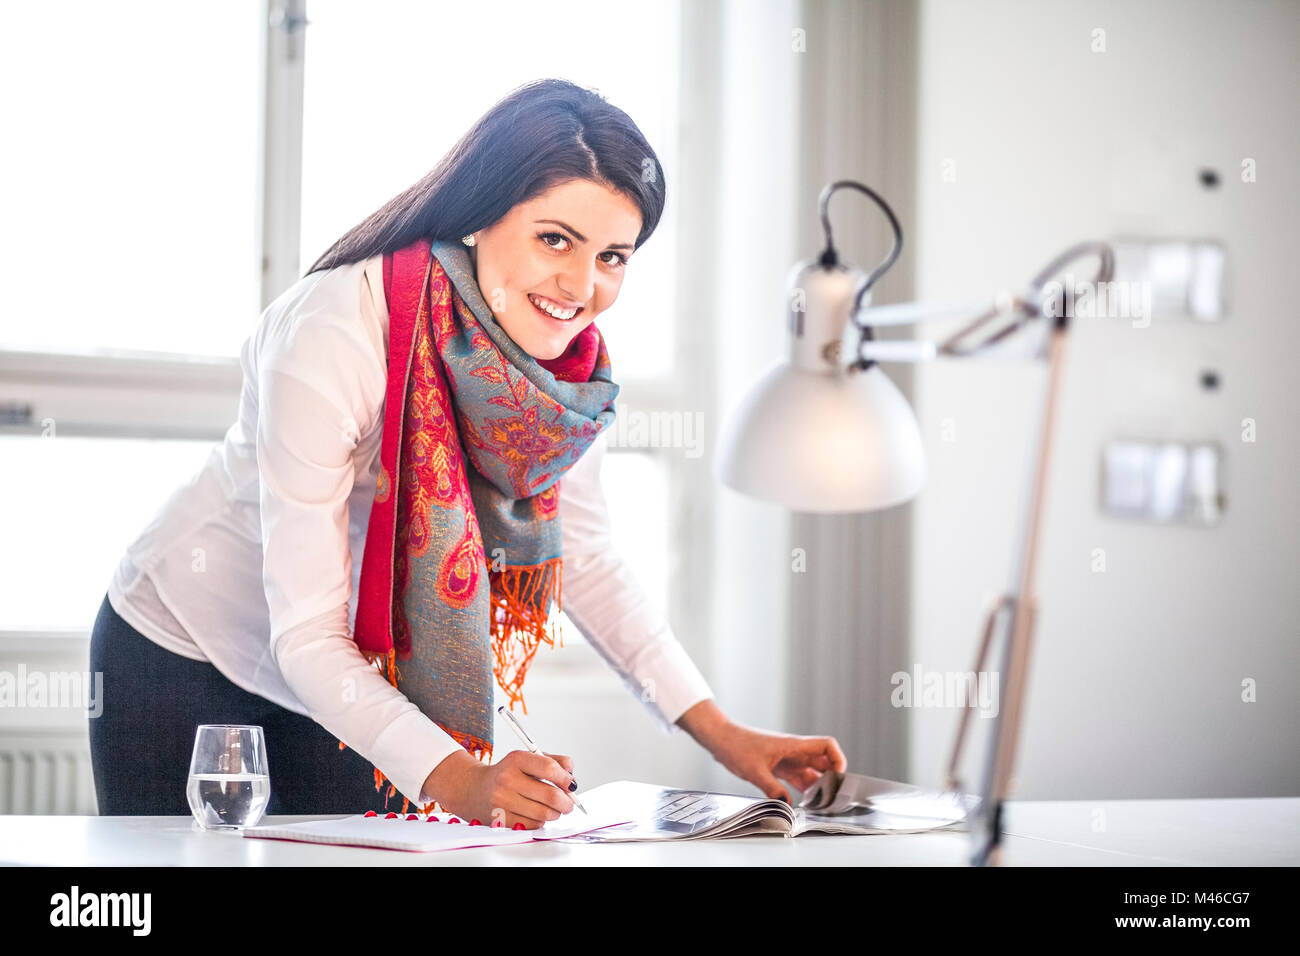 Portrait of businesswoman writing notes at desk in office - Stock Image